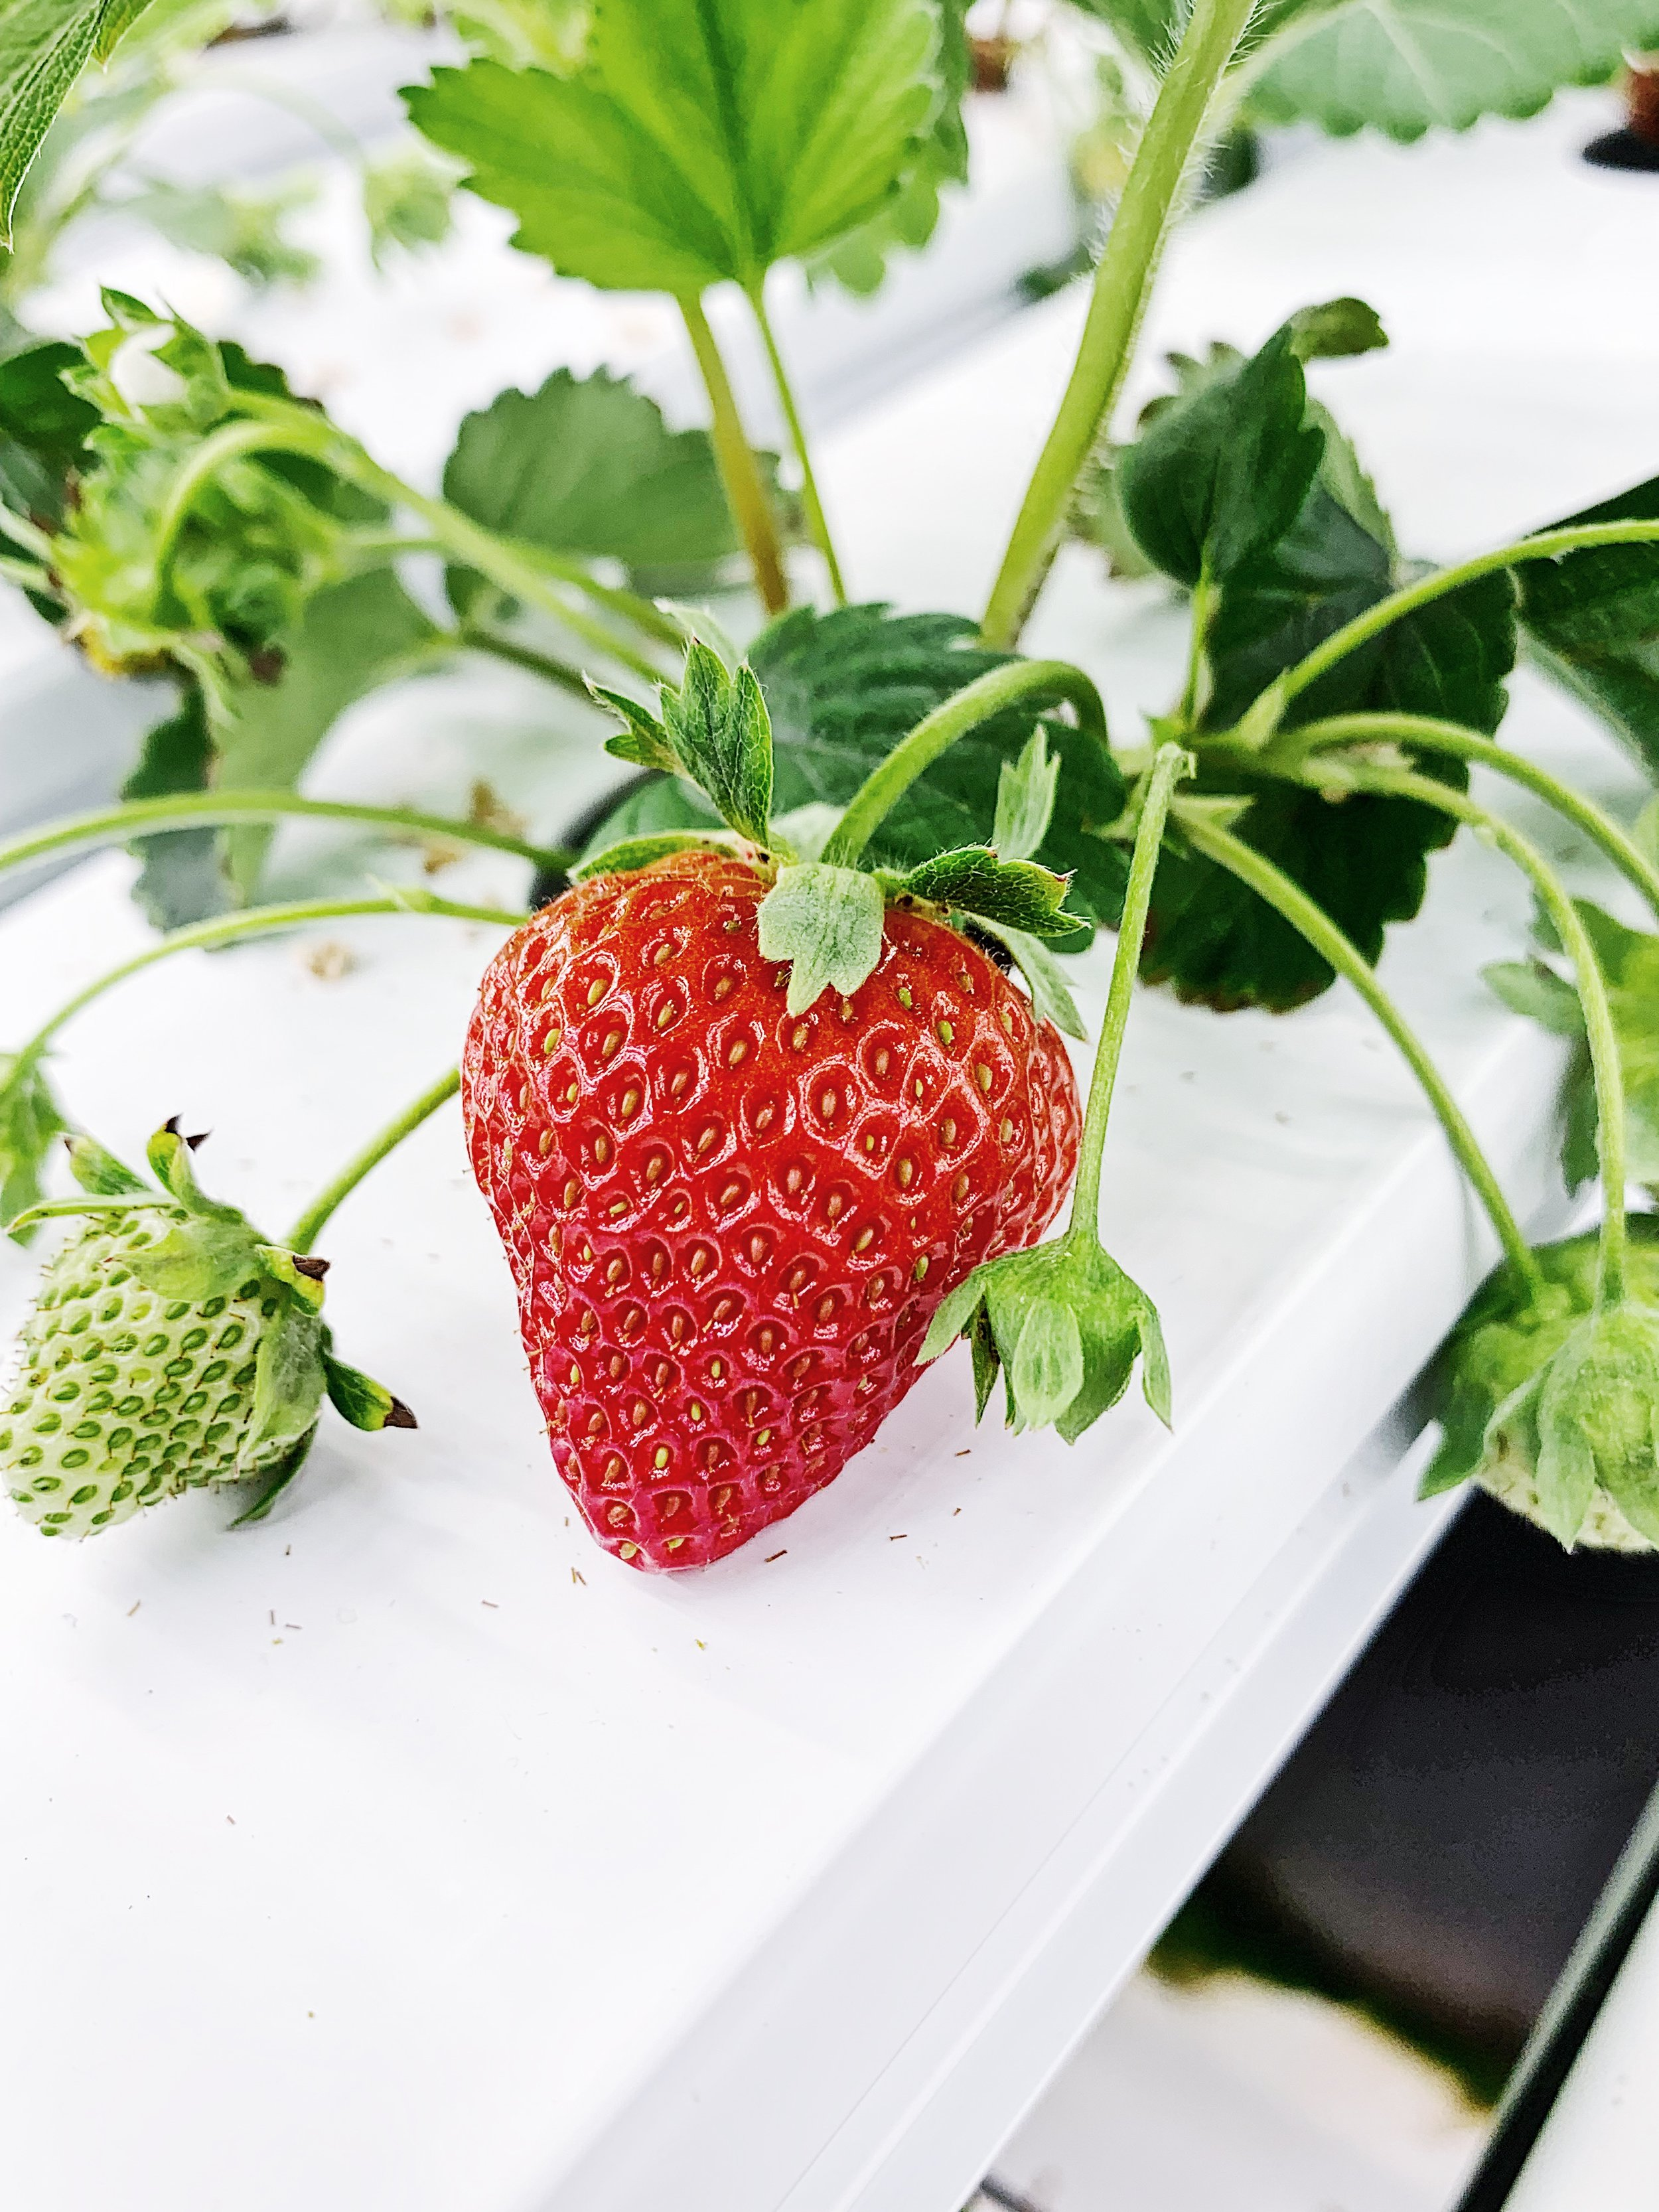 New Jersey strawberries in February? - It's more than wishful thinking.Kêr Farms (sounds like 'care') is an indoor vertical farm.Our talented farmer-scientists ensure that the right mix of nutrients is delivered to each plant every day, the light is always bright, and the temperature is balmy.Given perfect conditions, our plants grow quickly and with maximum flavor.